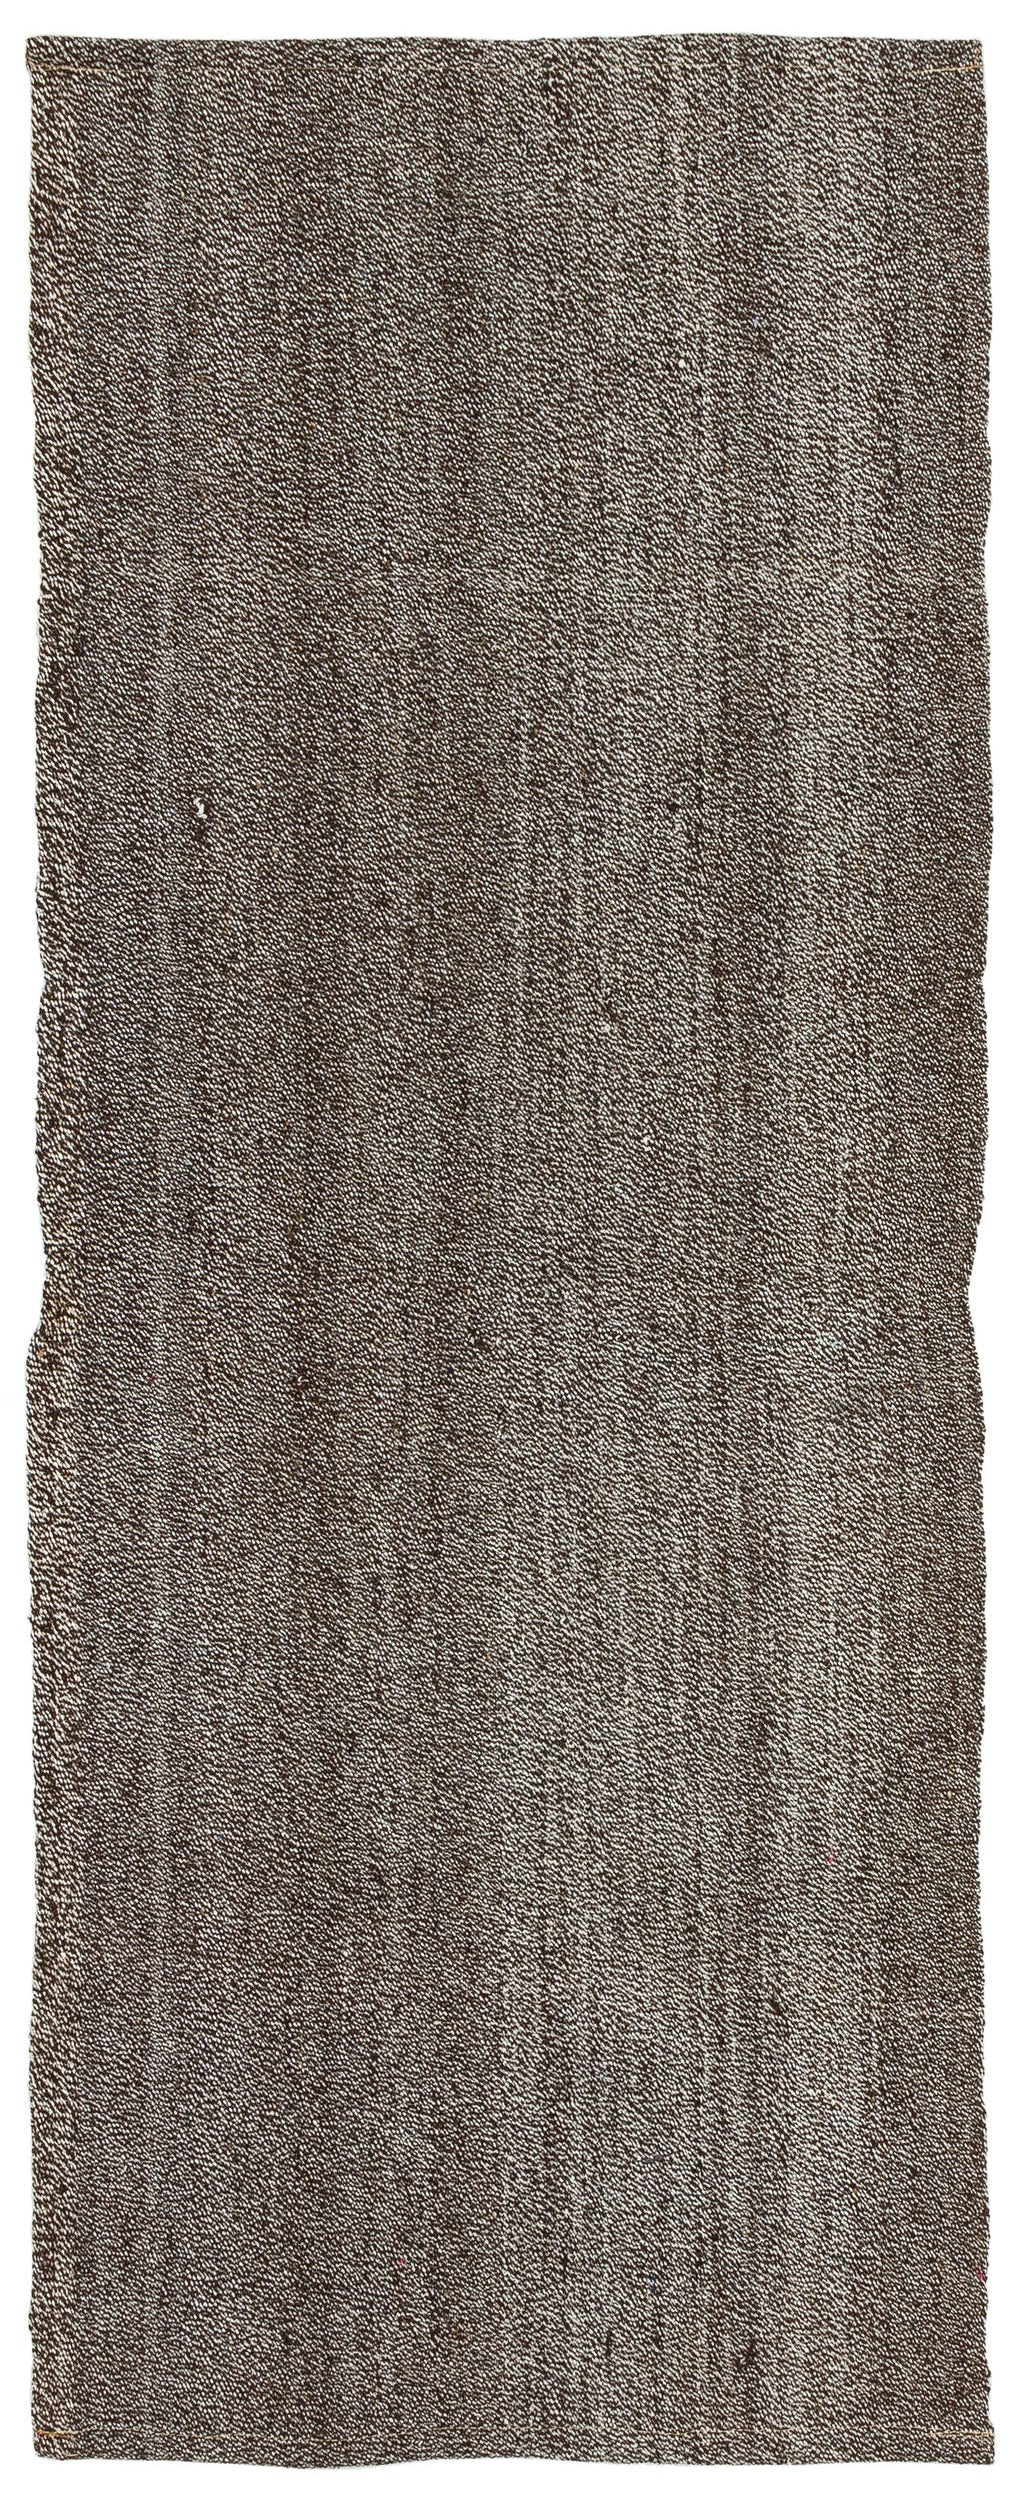 Chaput Over Dyed Kilim Rug 2'5'' x 6'2'' ft 73 x 189 cm